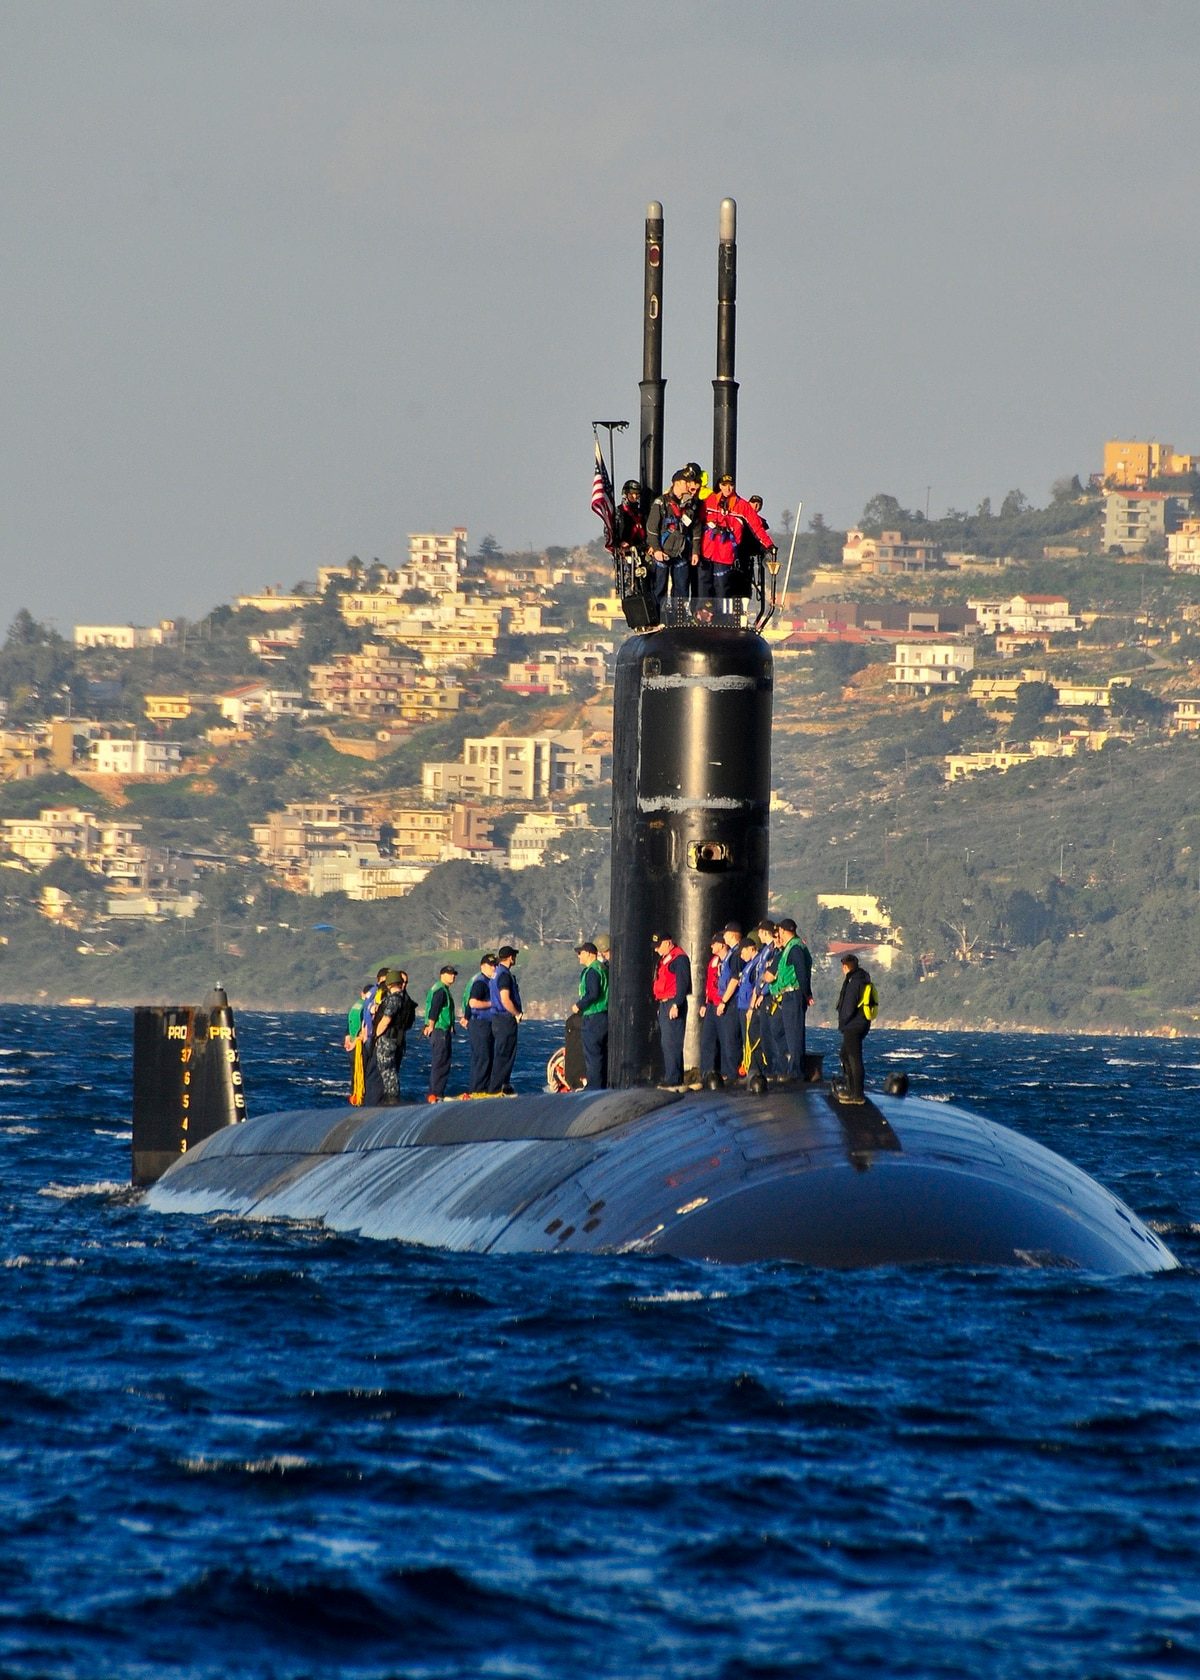 Sailor Faces Charges For Submarine Photos On Cell Phone - Do cruise ships have cell service